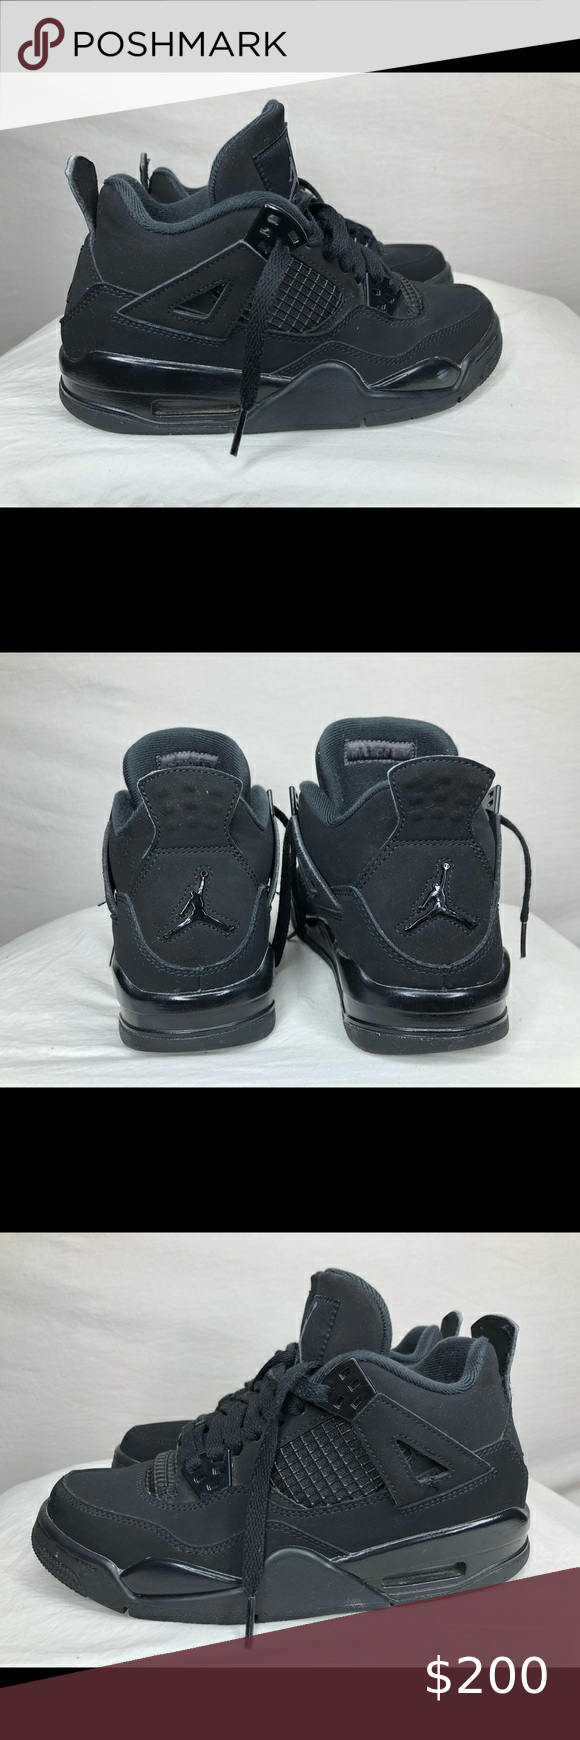 Air Jordan Black Cat 4 size 5Y / 6.5 W In mit condition